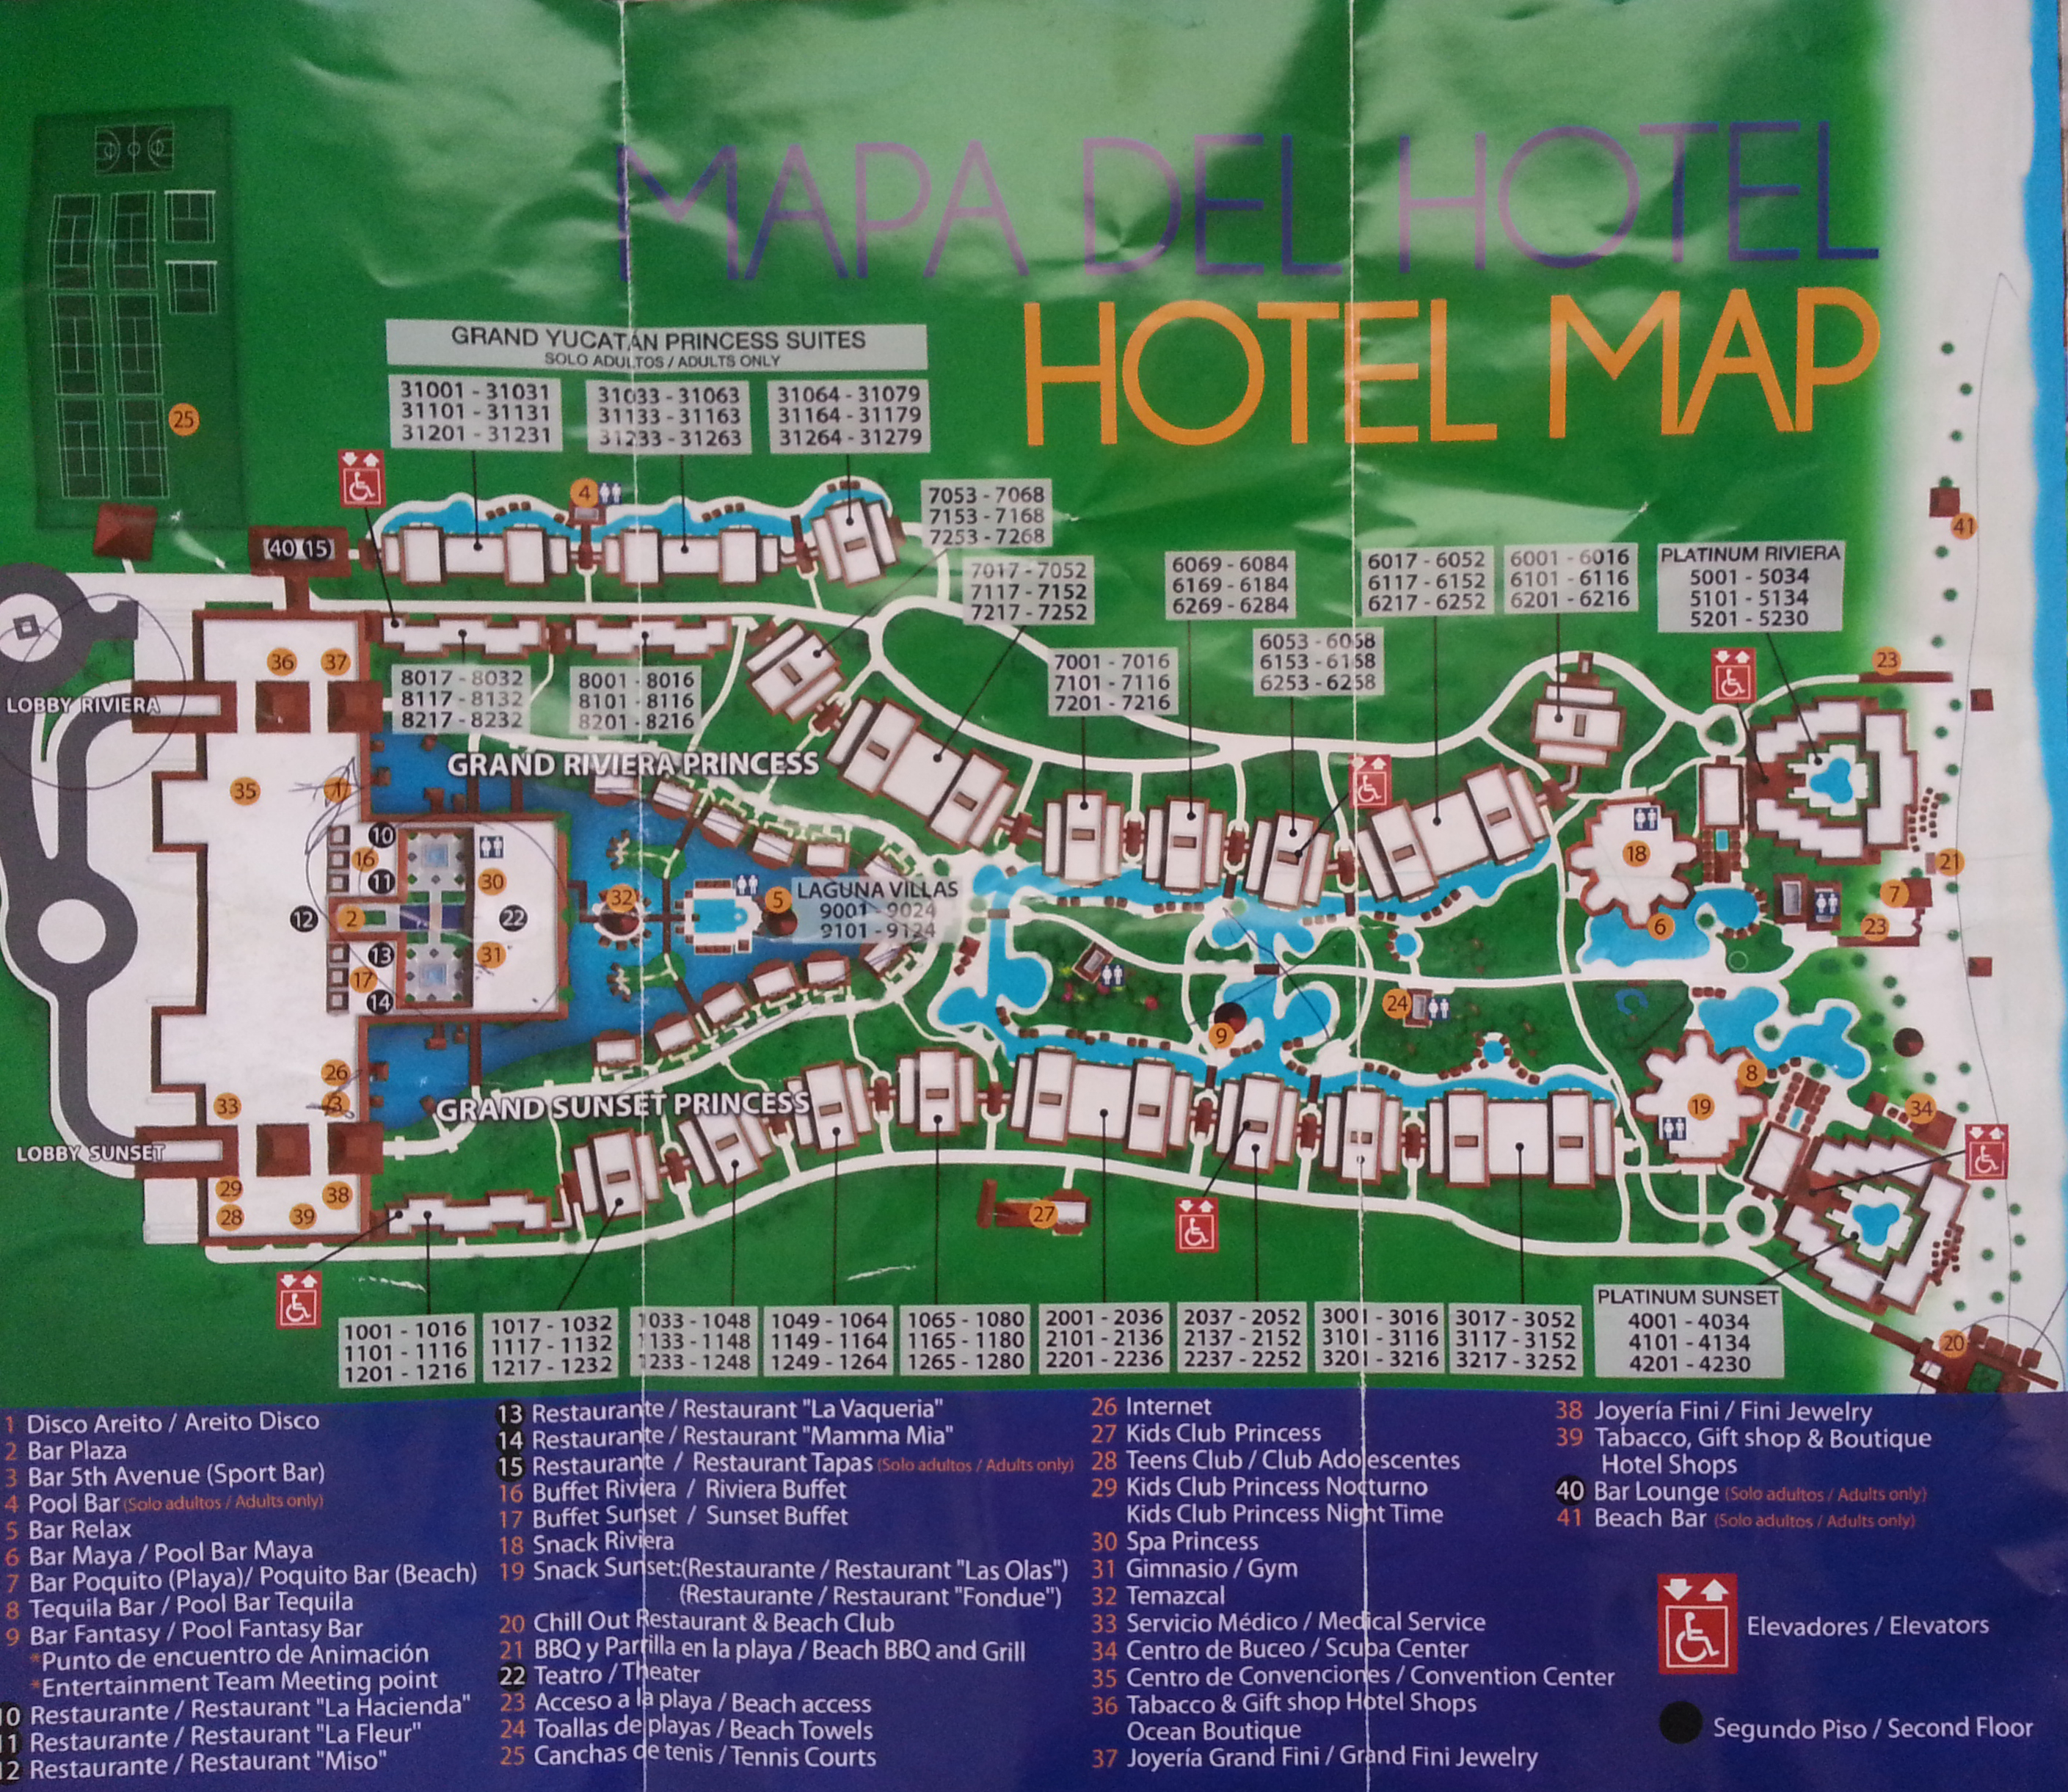 rosewood mayakoba resort map with Photo Tour Of The Grand Riviera Princess And Laguna Villas Playa Del Carmen Riviera Maya Mexico on Las 5 Playas Mas Bonitas De Mexico together with Hotel Review G150812 D7383252 Reviews Angelo s Hotel Playa del Carmen Yucatan Peninsula besides Cape Cod Attractions Cape Point Hotel On Cape Cod together with Riviera Maya Hotels Rosewood Mayakoba h1773497 together with Over The Water Suites In Montego Bay Jamaica.